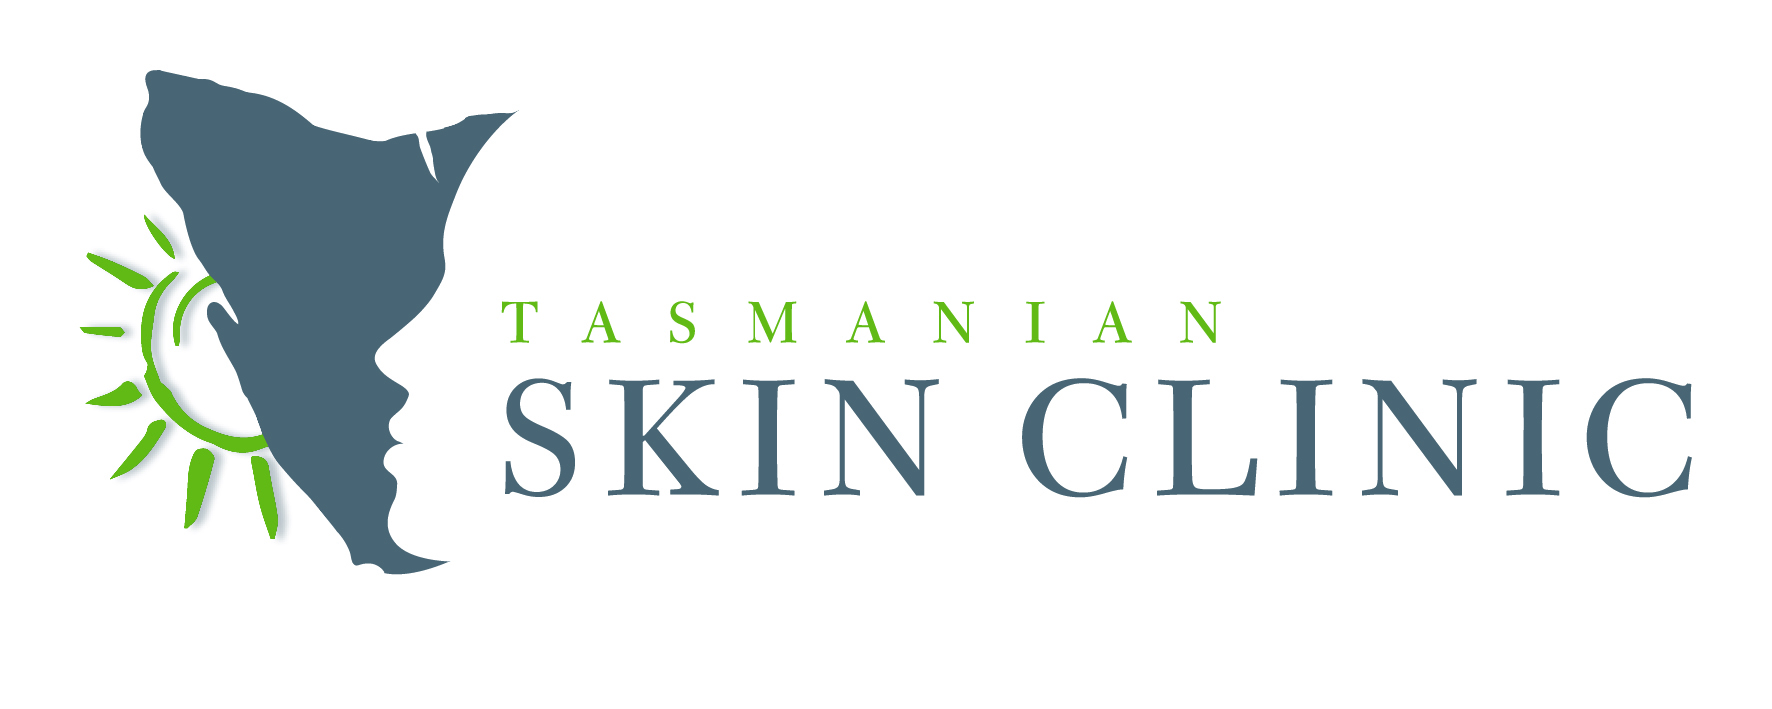 Tasmanian Skin Clinic for dermatology, skin cancer, medical